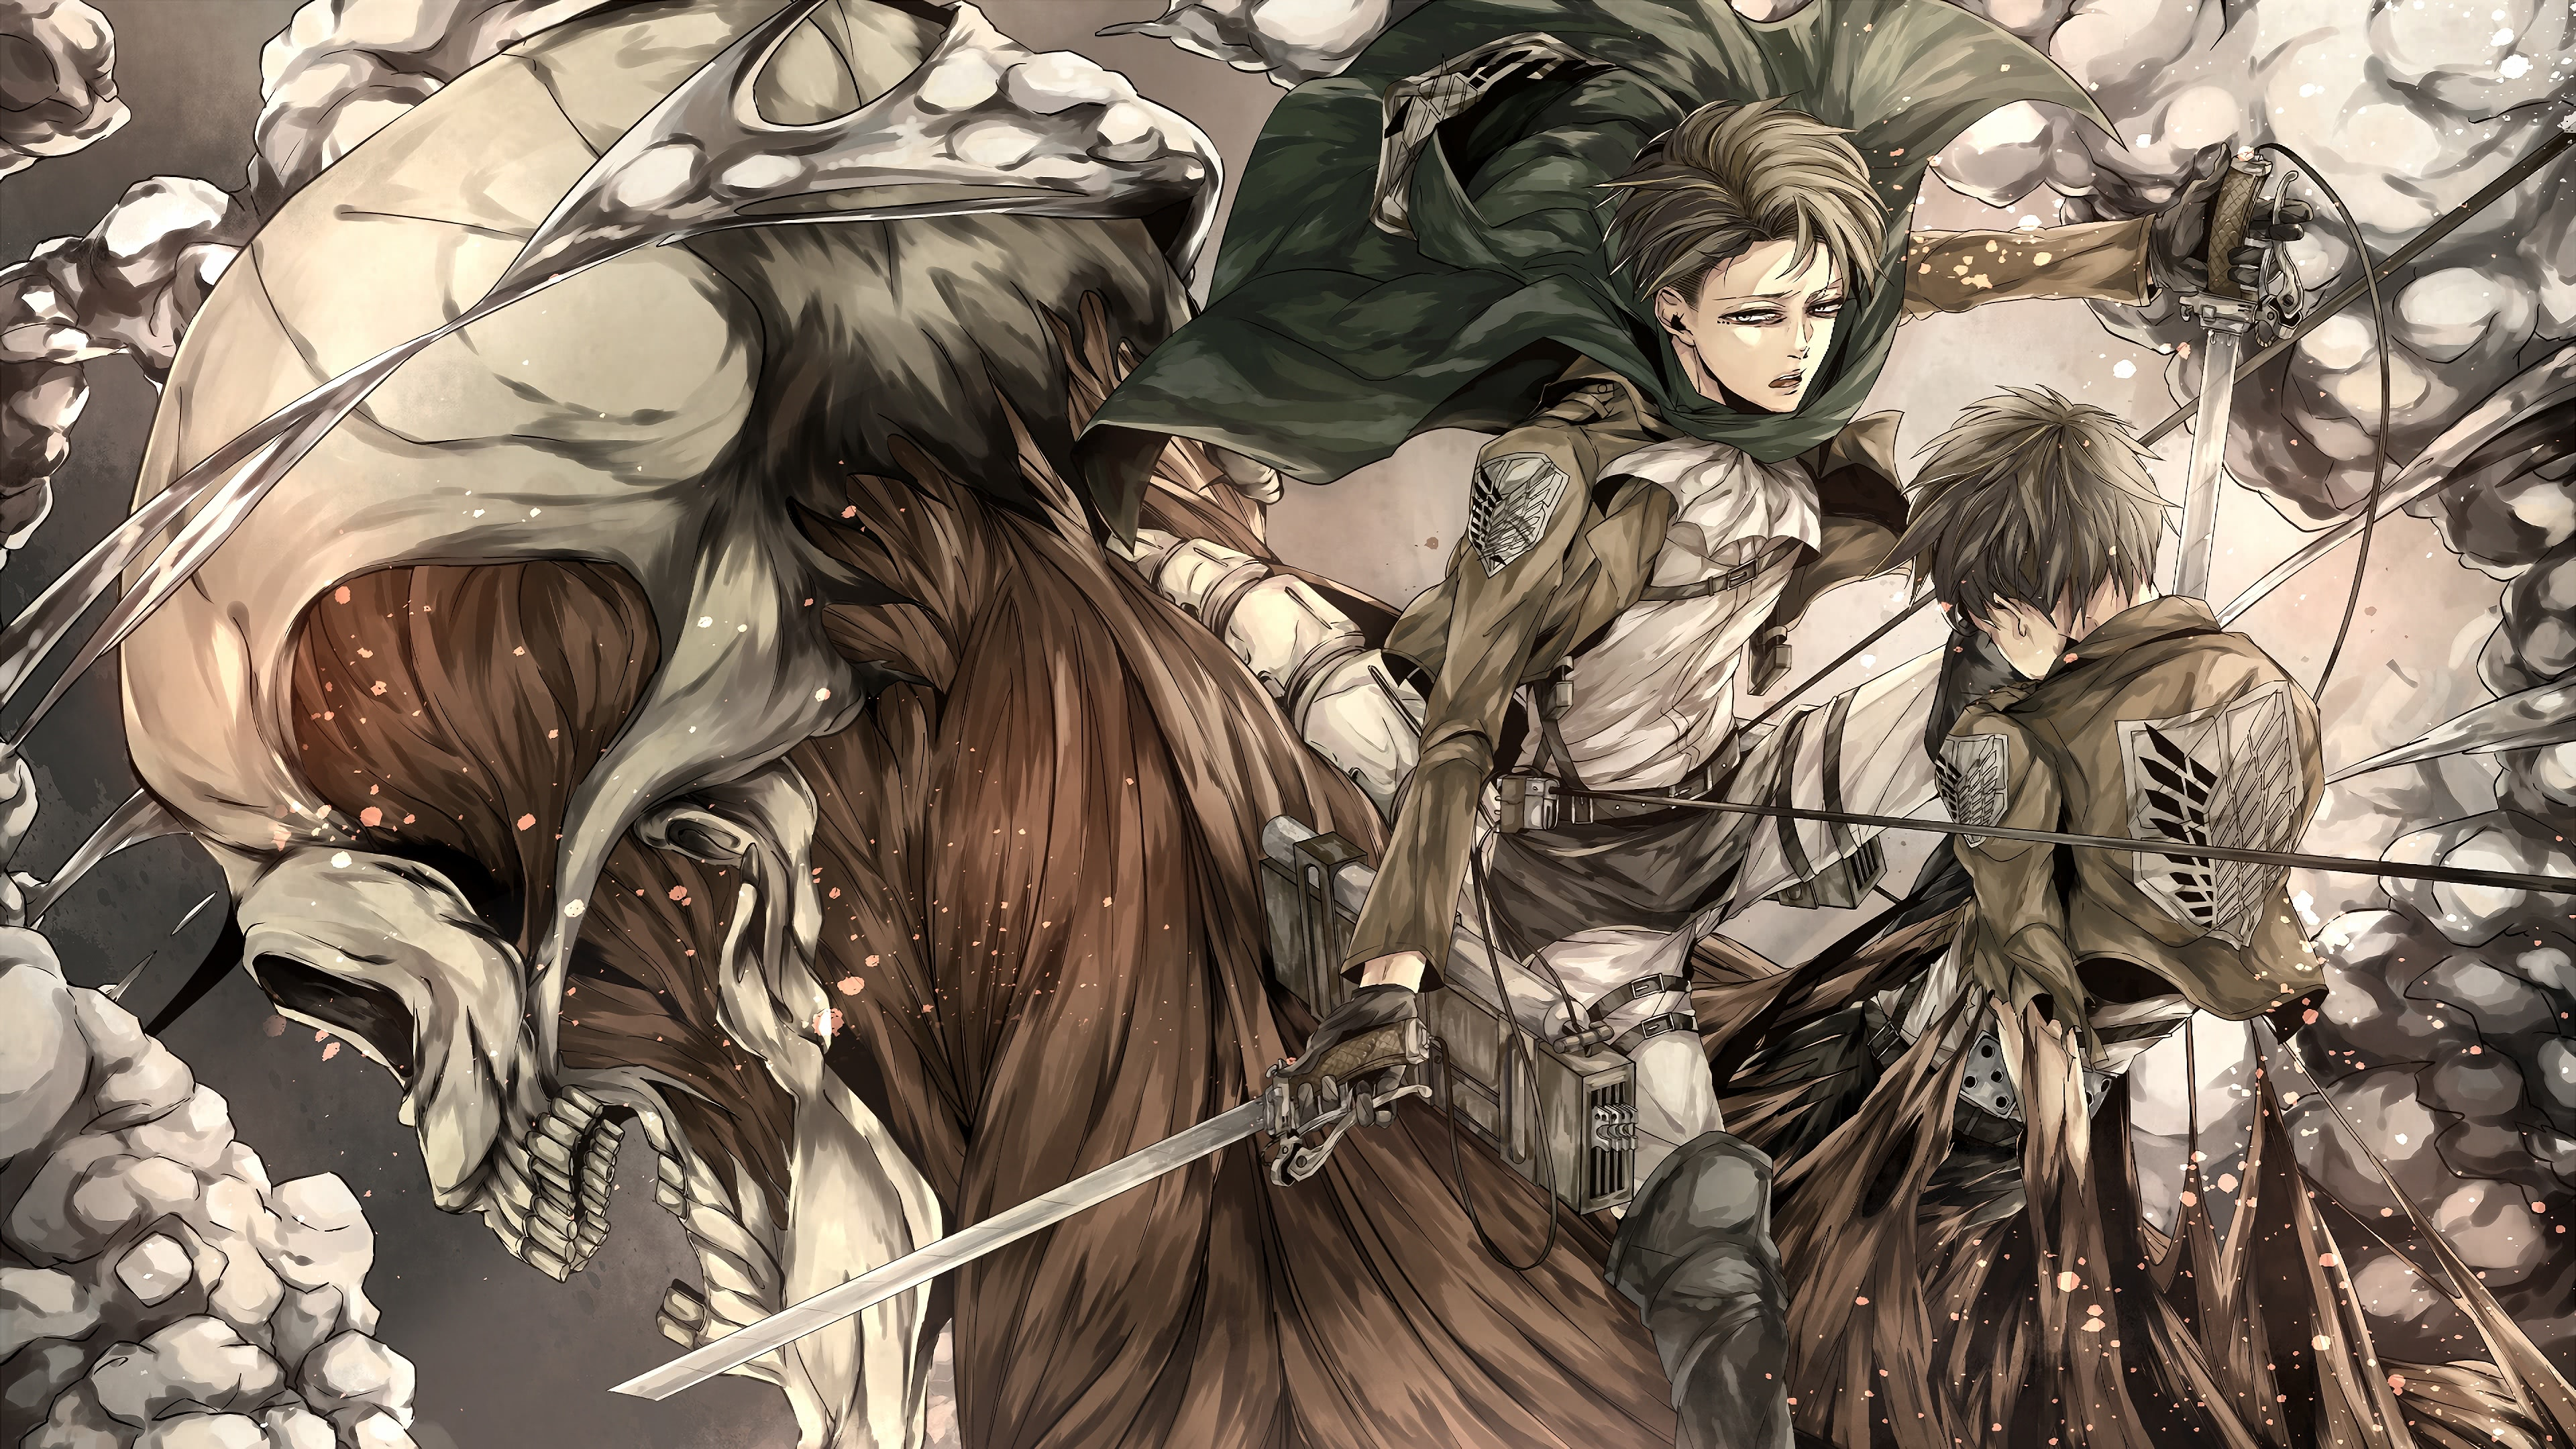 Attack On Titan Eren Yeager And Levi Ackerman Uhd 4k Wallpaper